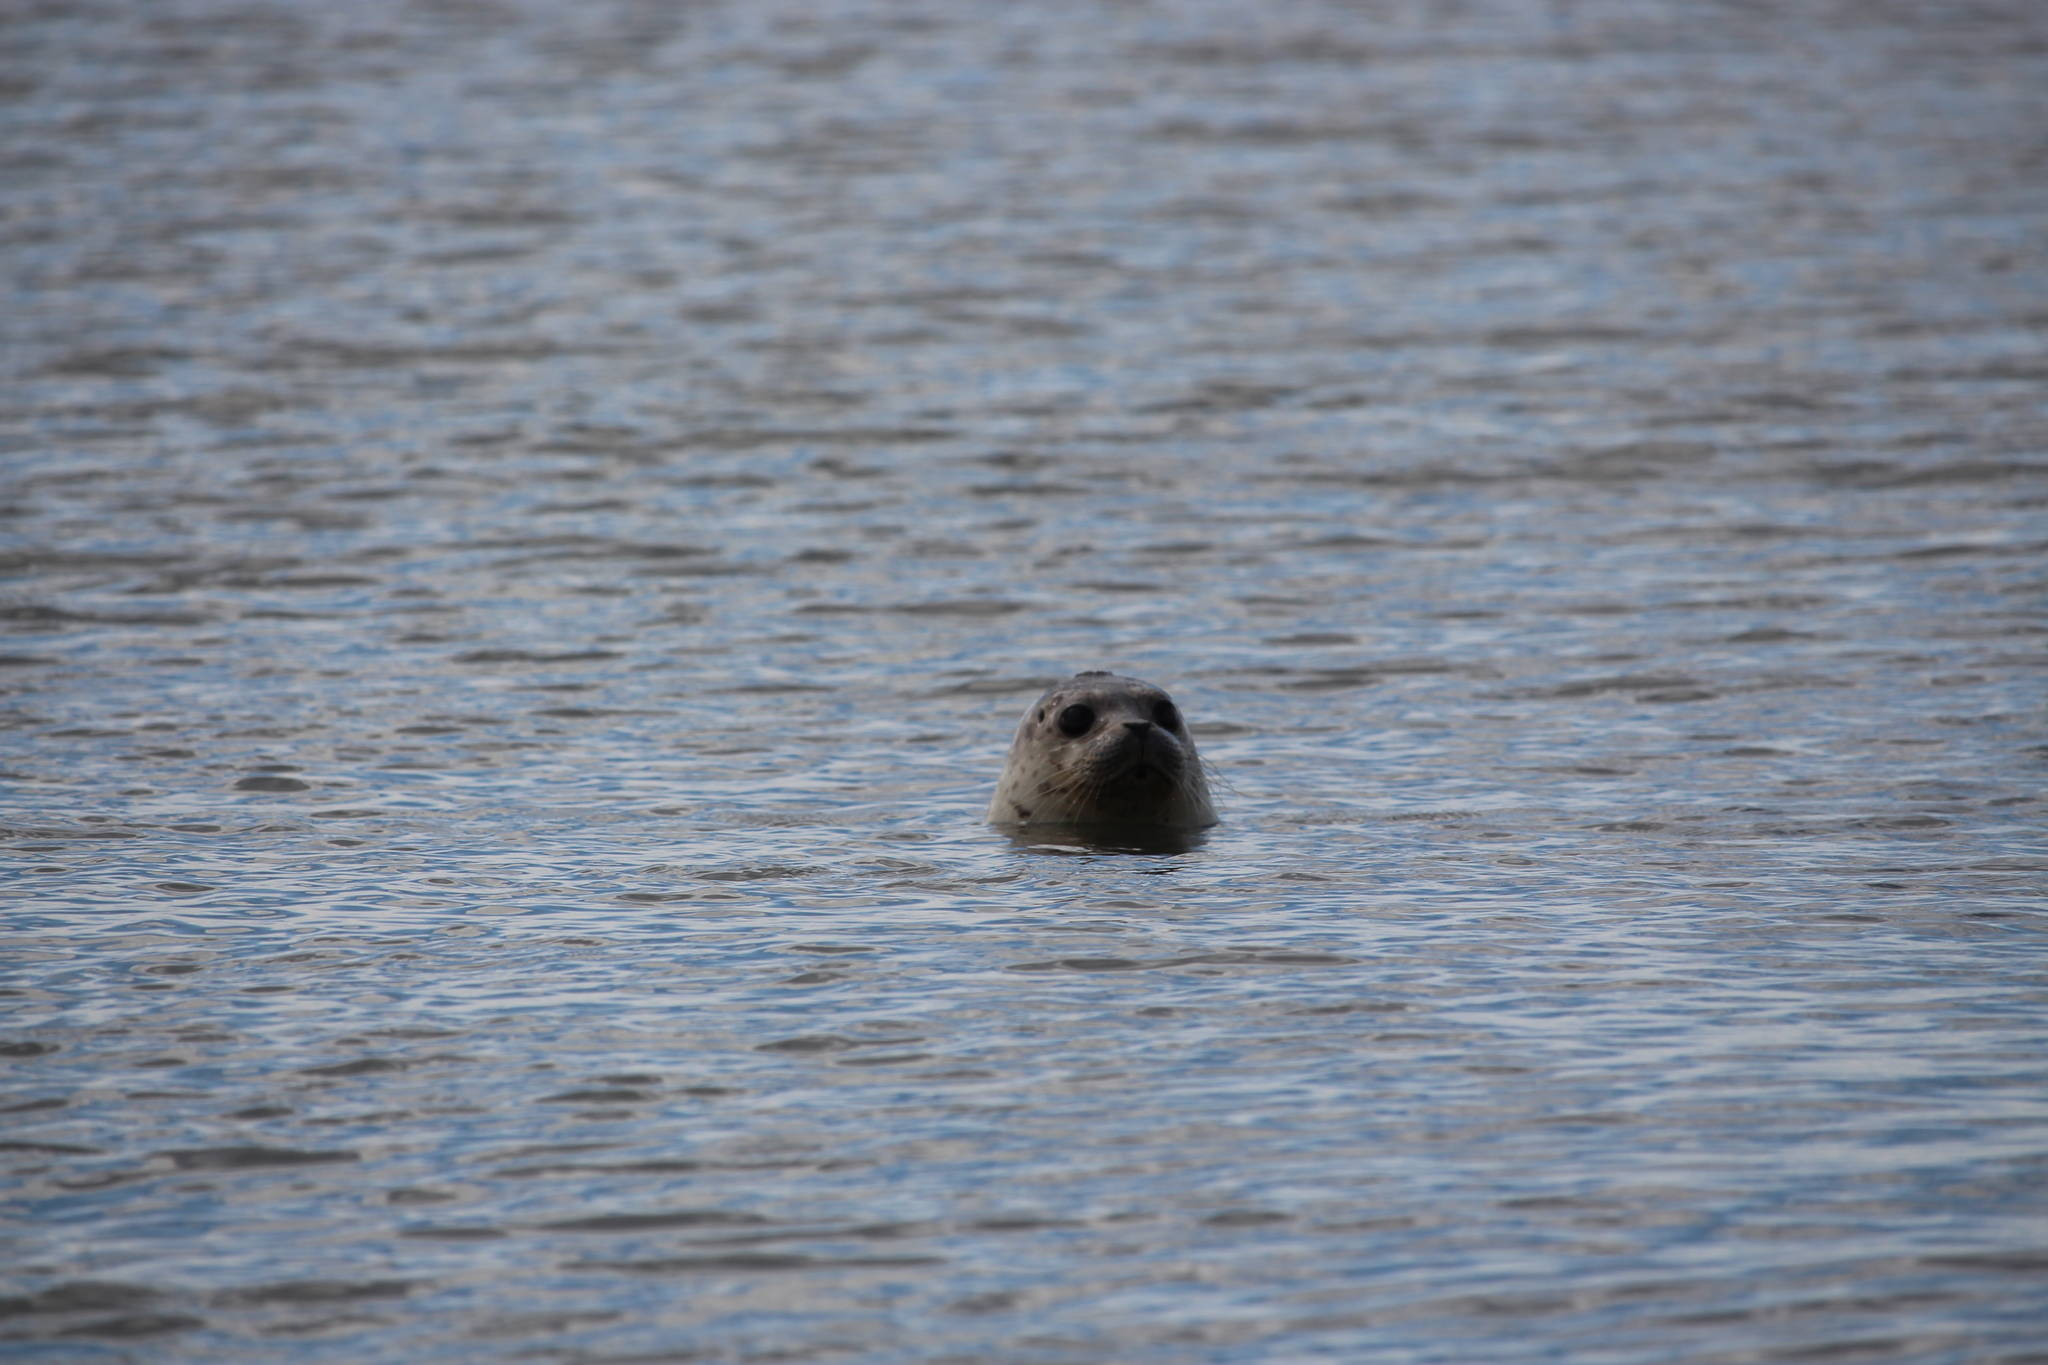 A harbor seal enjoys the waters of Cook Inlet after being released by staff from the Alaska SeaLife Center at the Kenai Beach on Aug. 27, 2020. (Photo by Brian Mazurek/Peninsula Clarion)